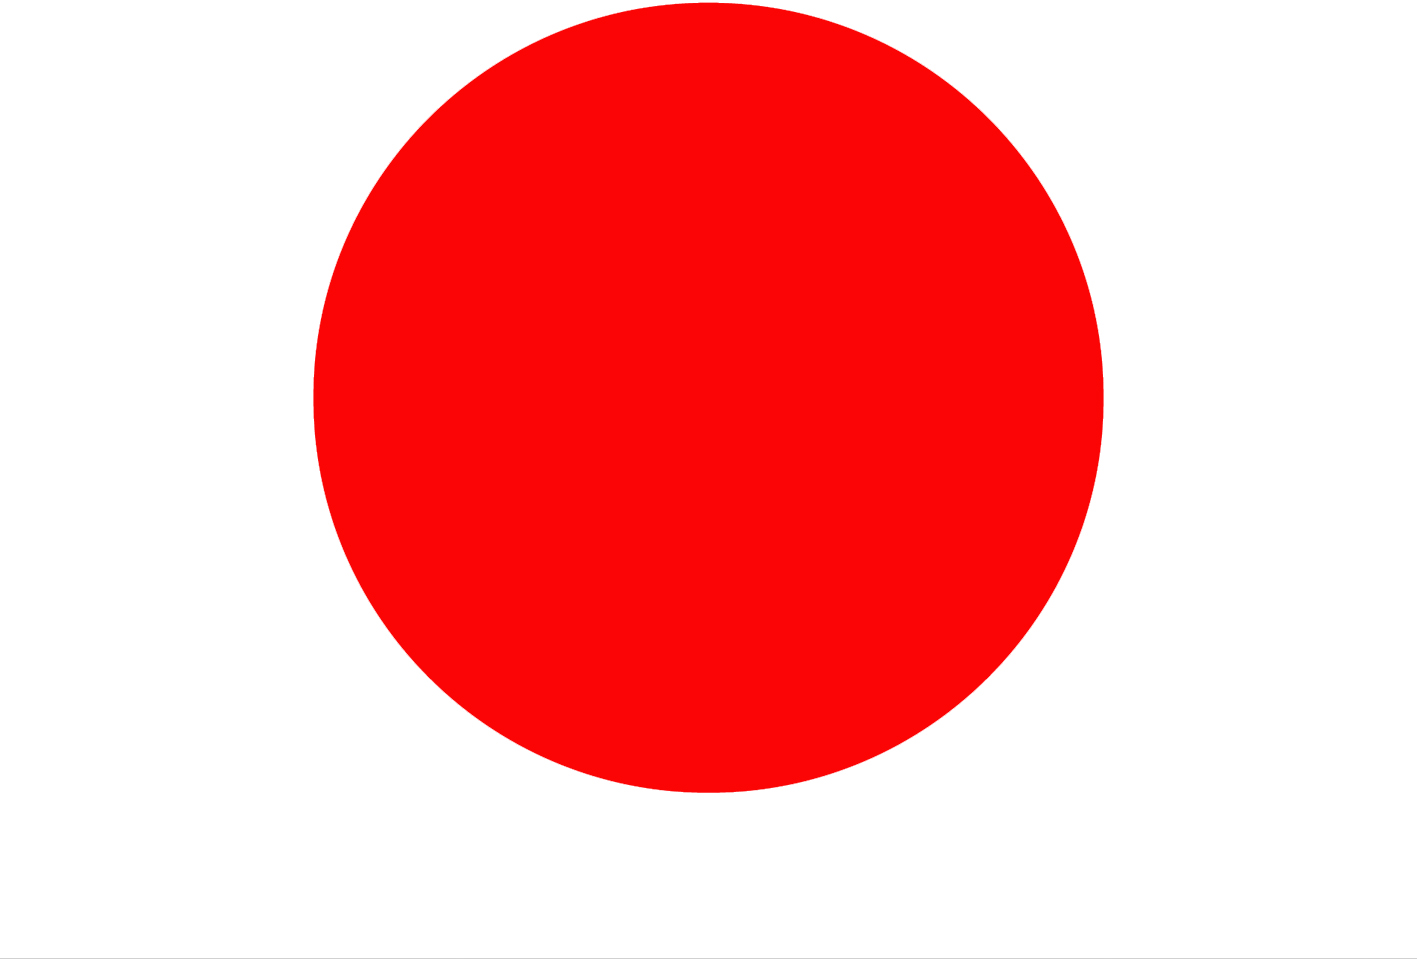 10 Red Circle Icon Images - Red Circle X Icon, Red Circle ...